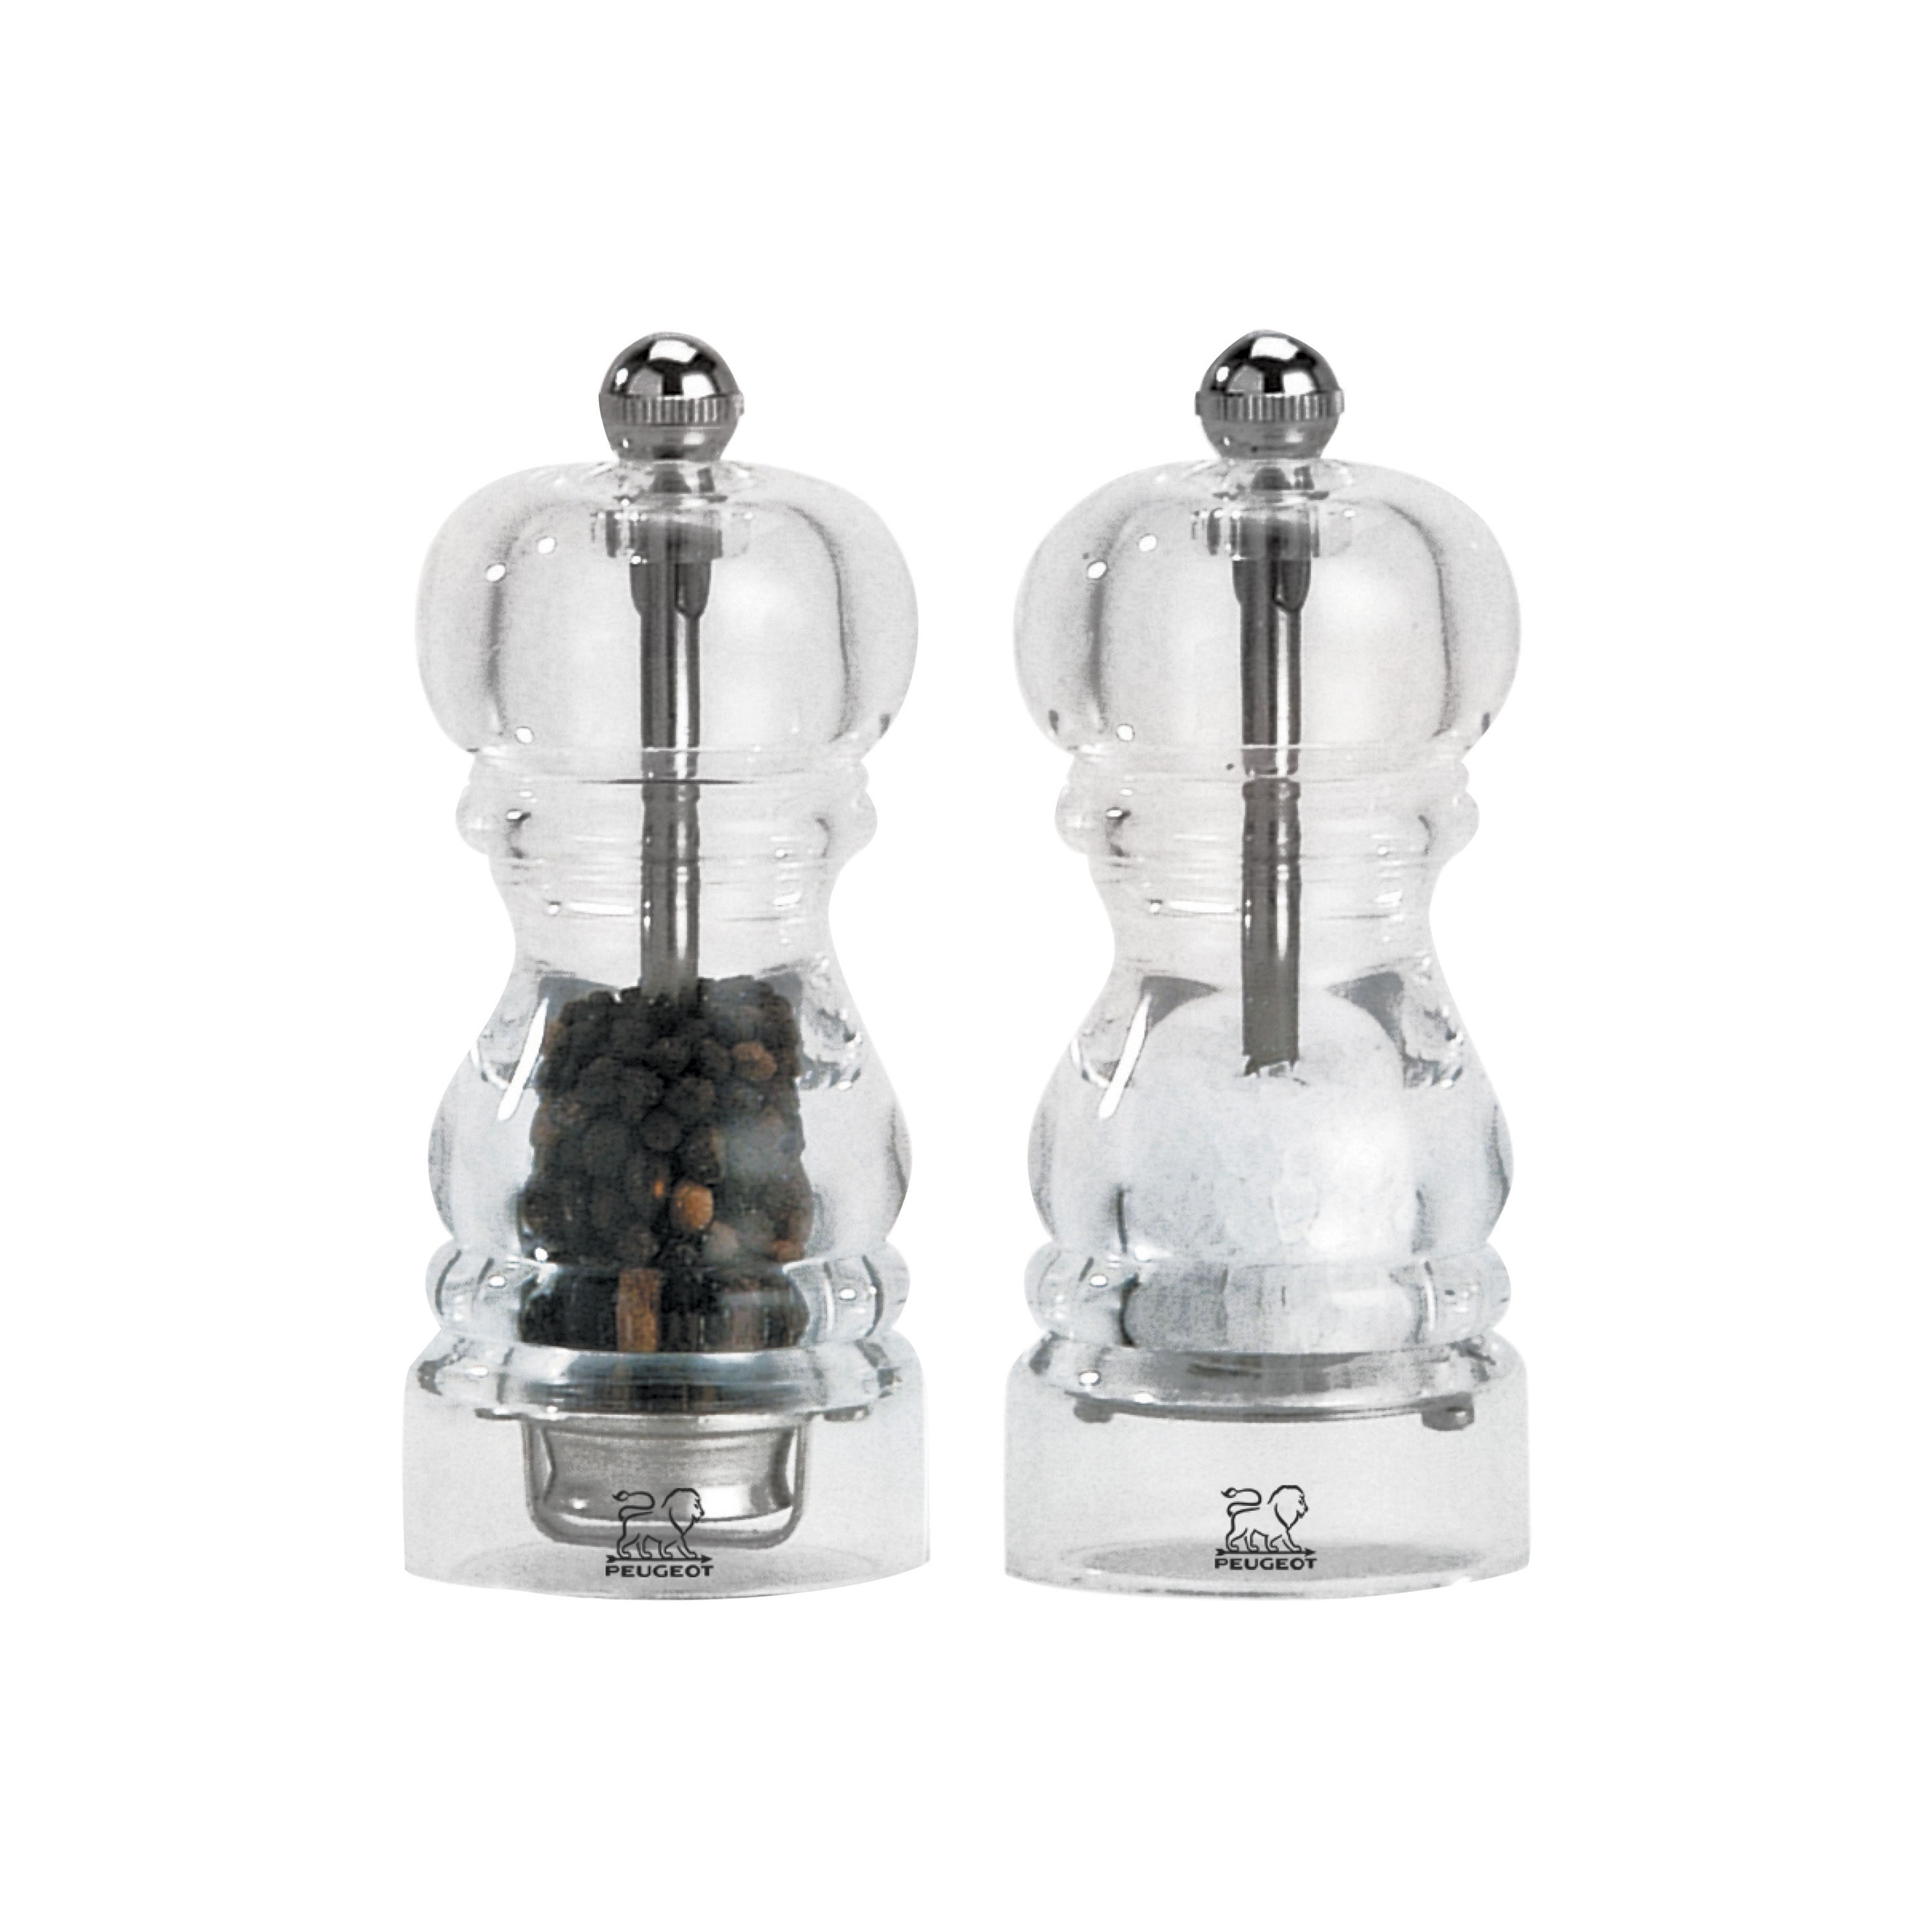 peugeot nancy acrylic salt pepper mill set cutlery and more. Black Bedroom Furniture Sets. Home Design Ideas